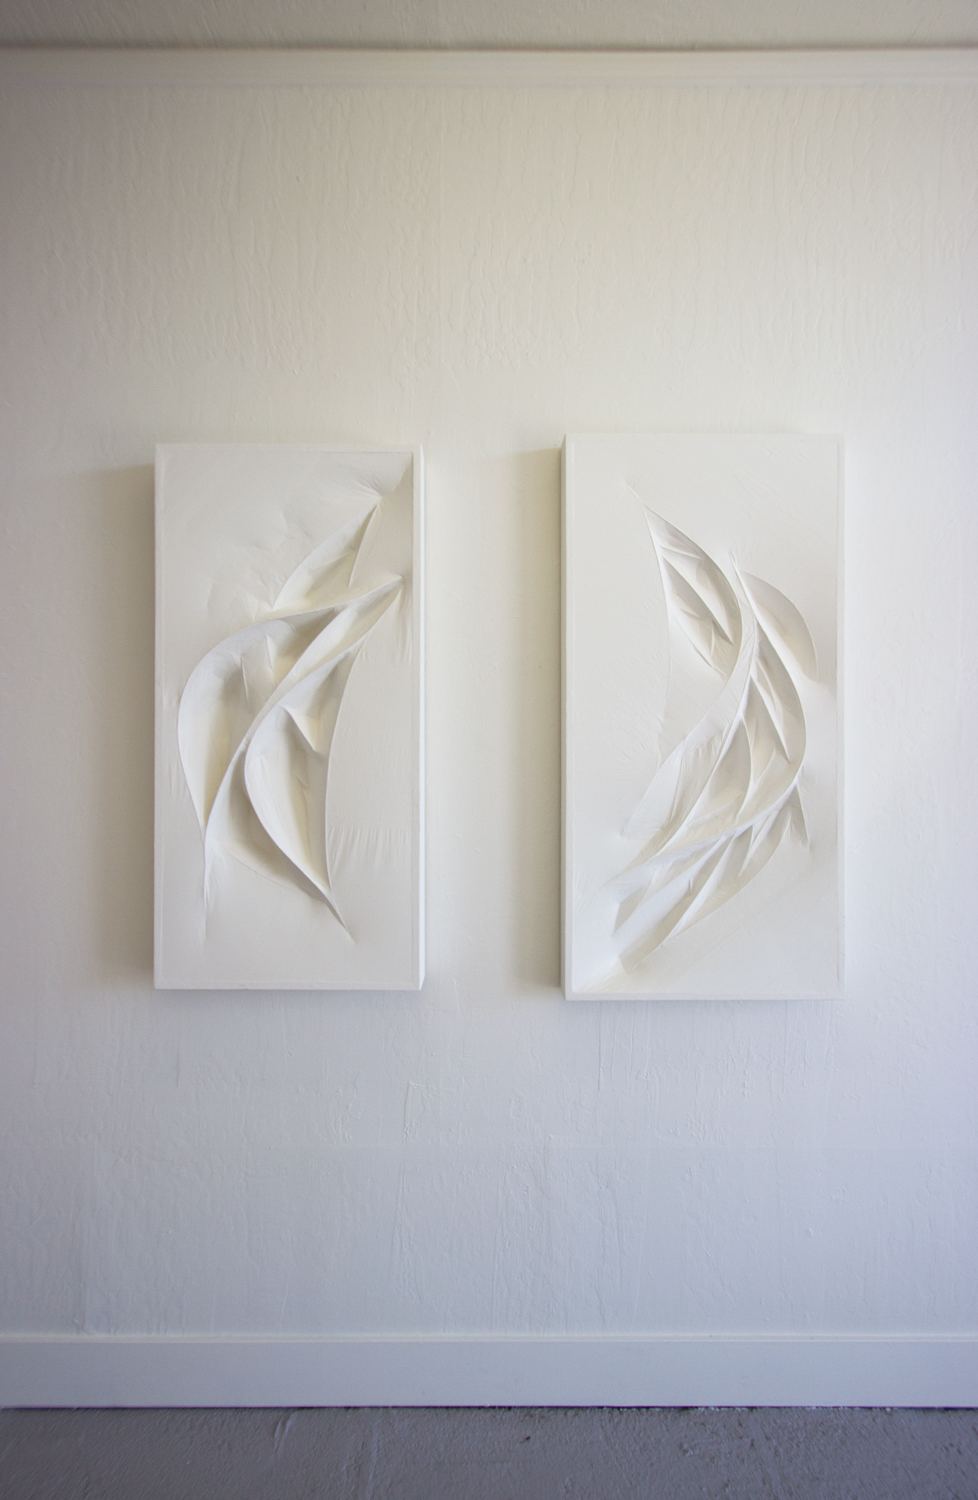 Untitled 1 & 2 (white forms)  2015  Wood panel, wood forms, and paper mache (white tracing paper with gallery white paint)  45 x 23.5 x 4 inches, 47.5 x 23.5 x 3 inches